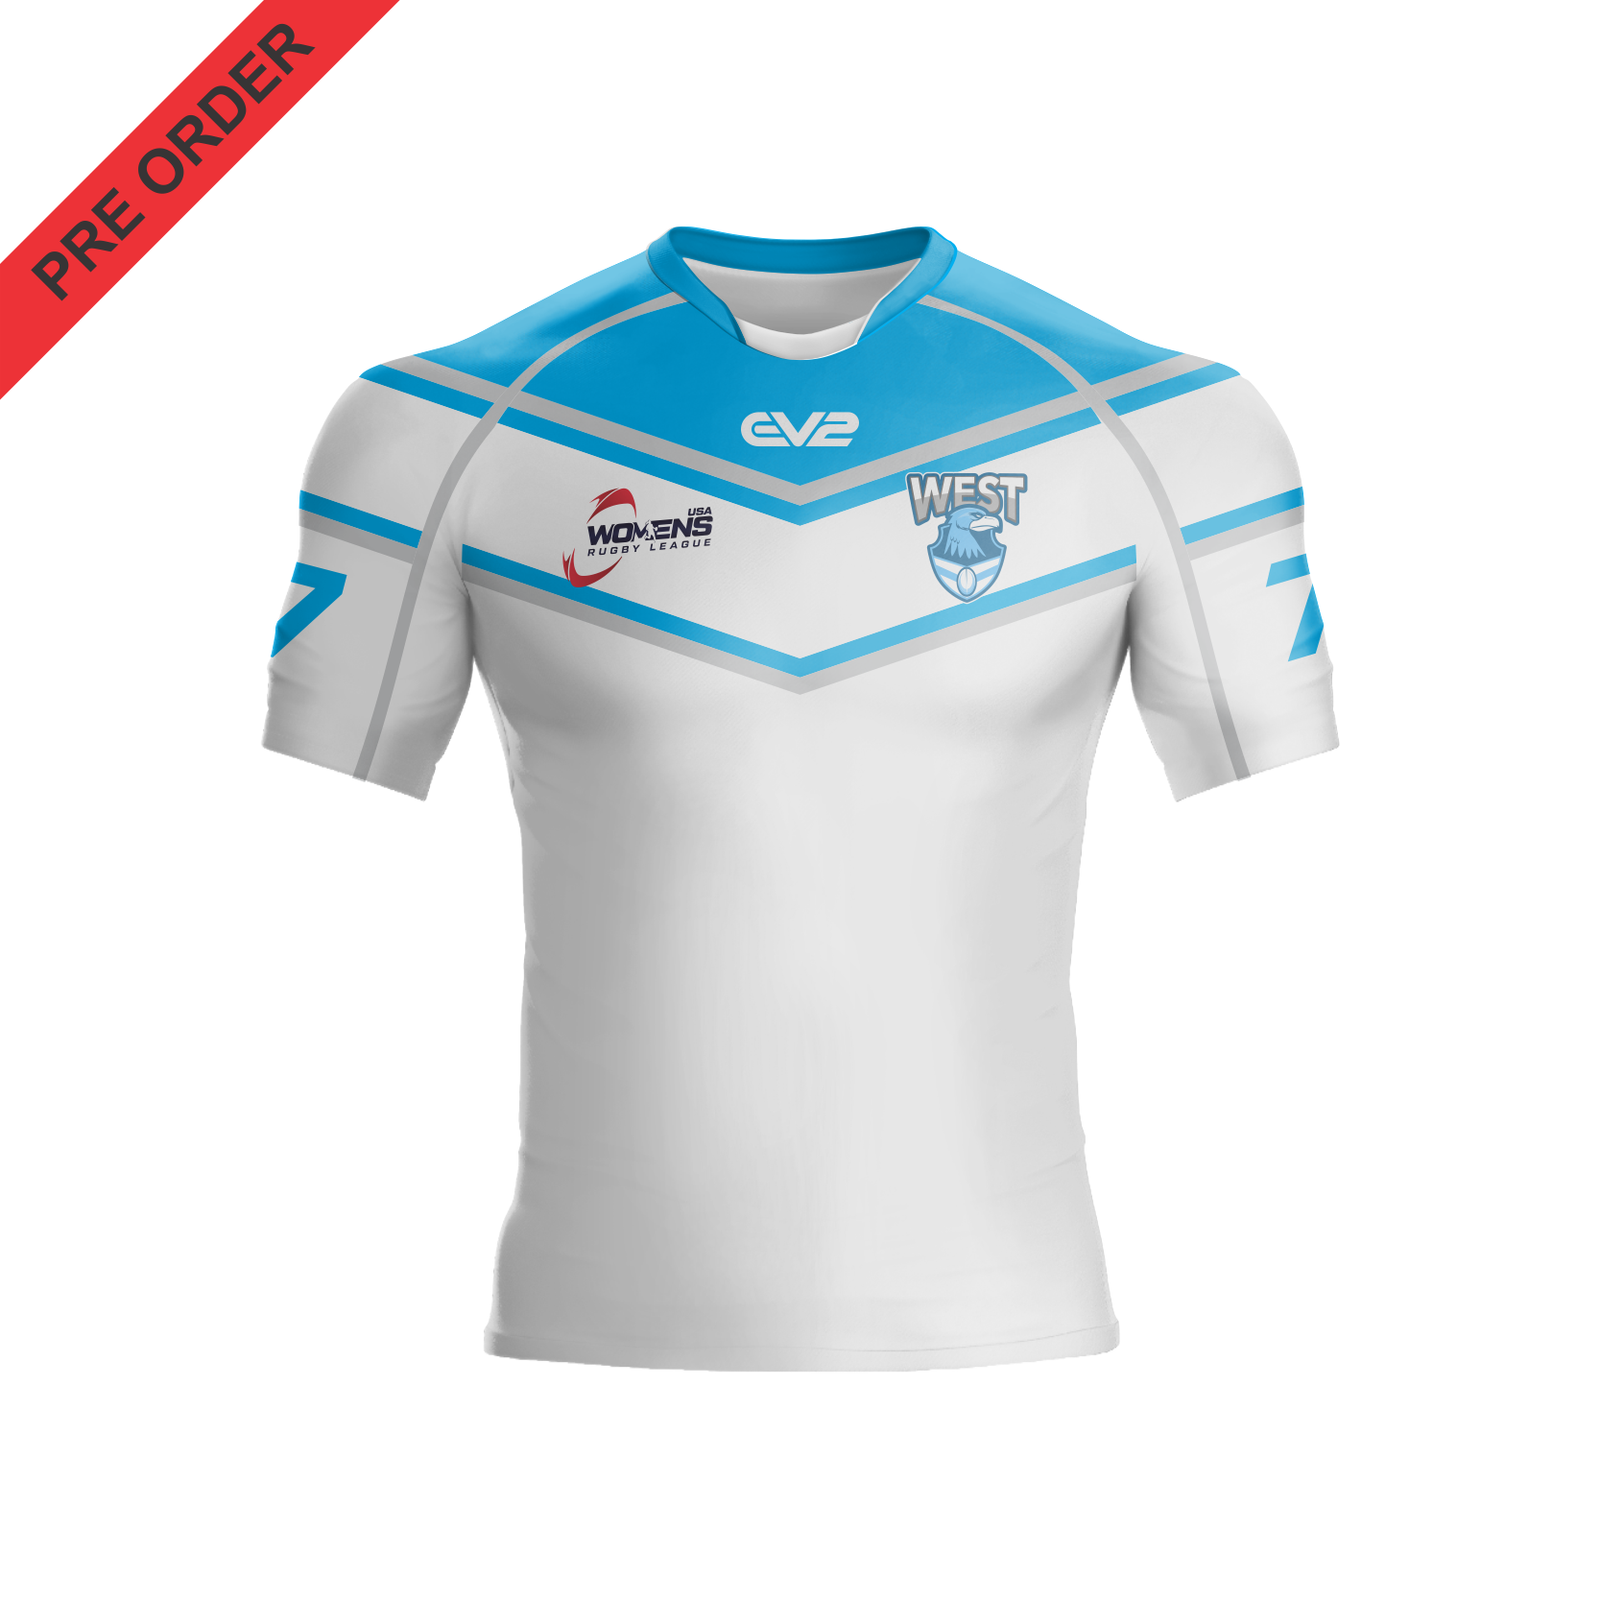 Wests Rugby League - Club Jersey